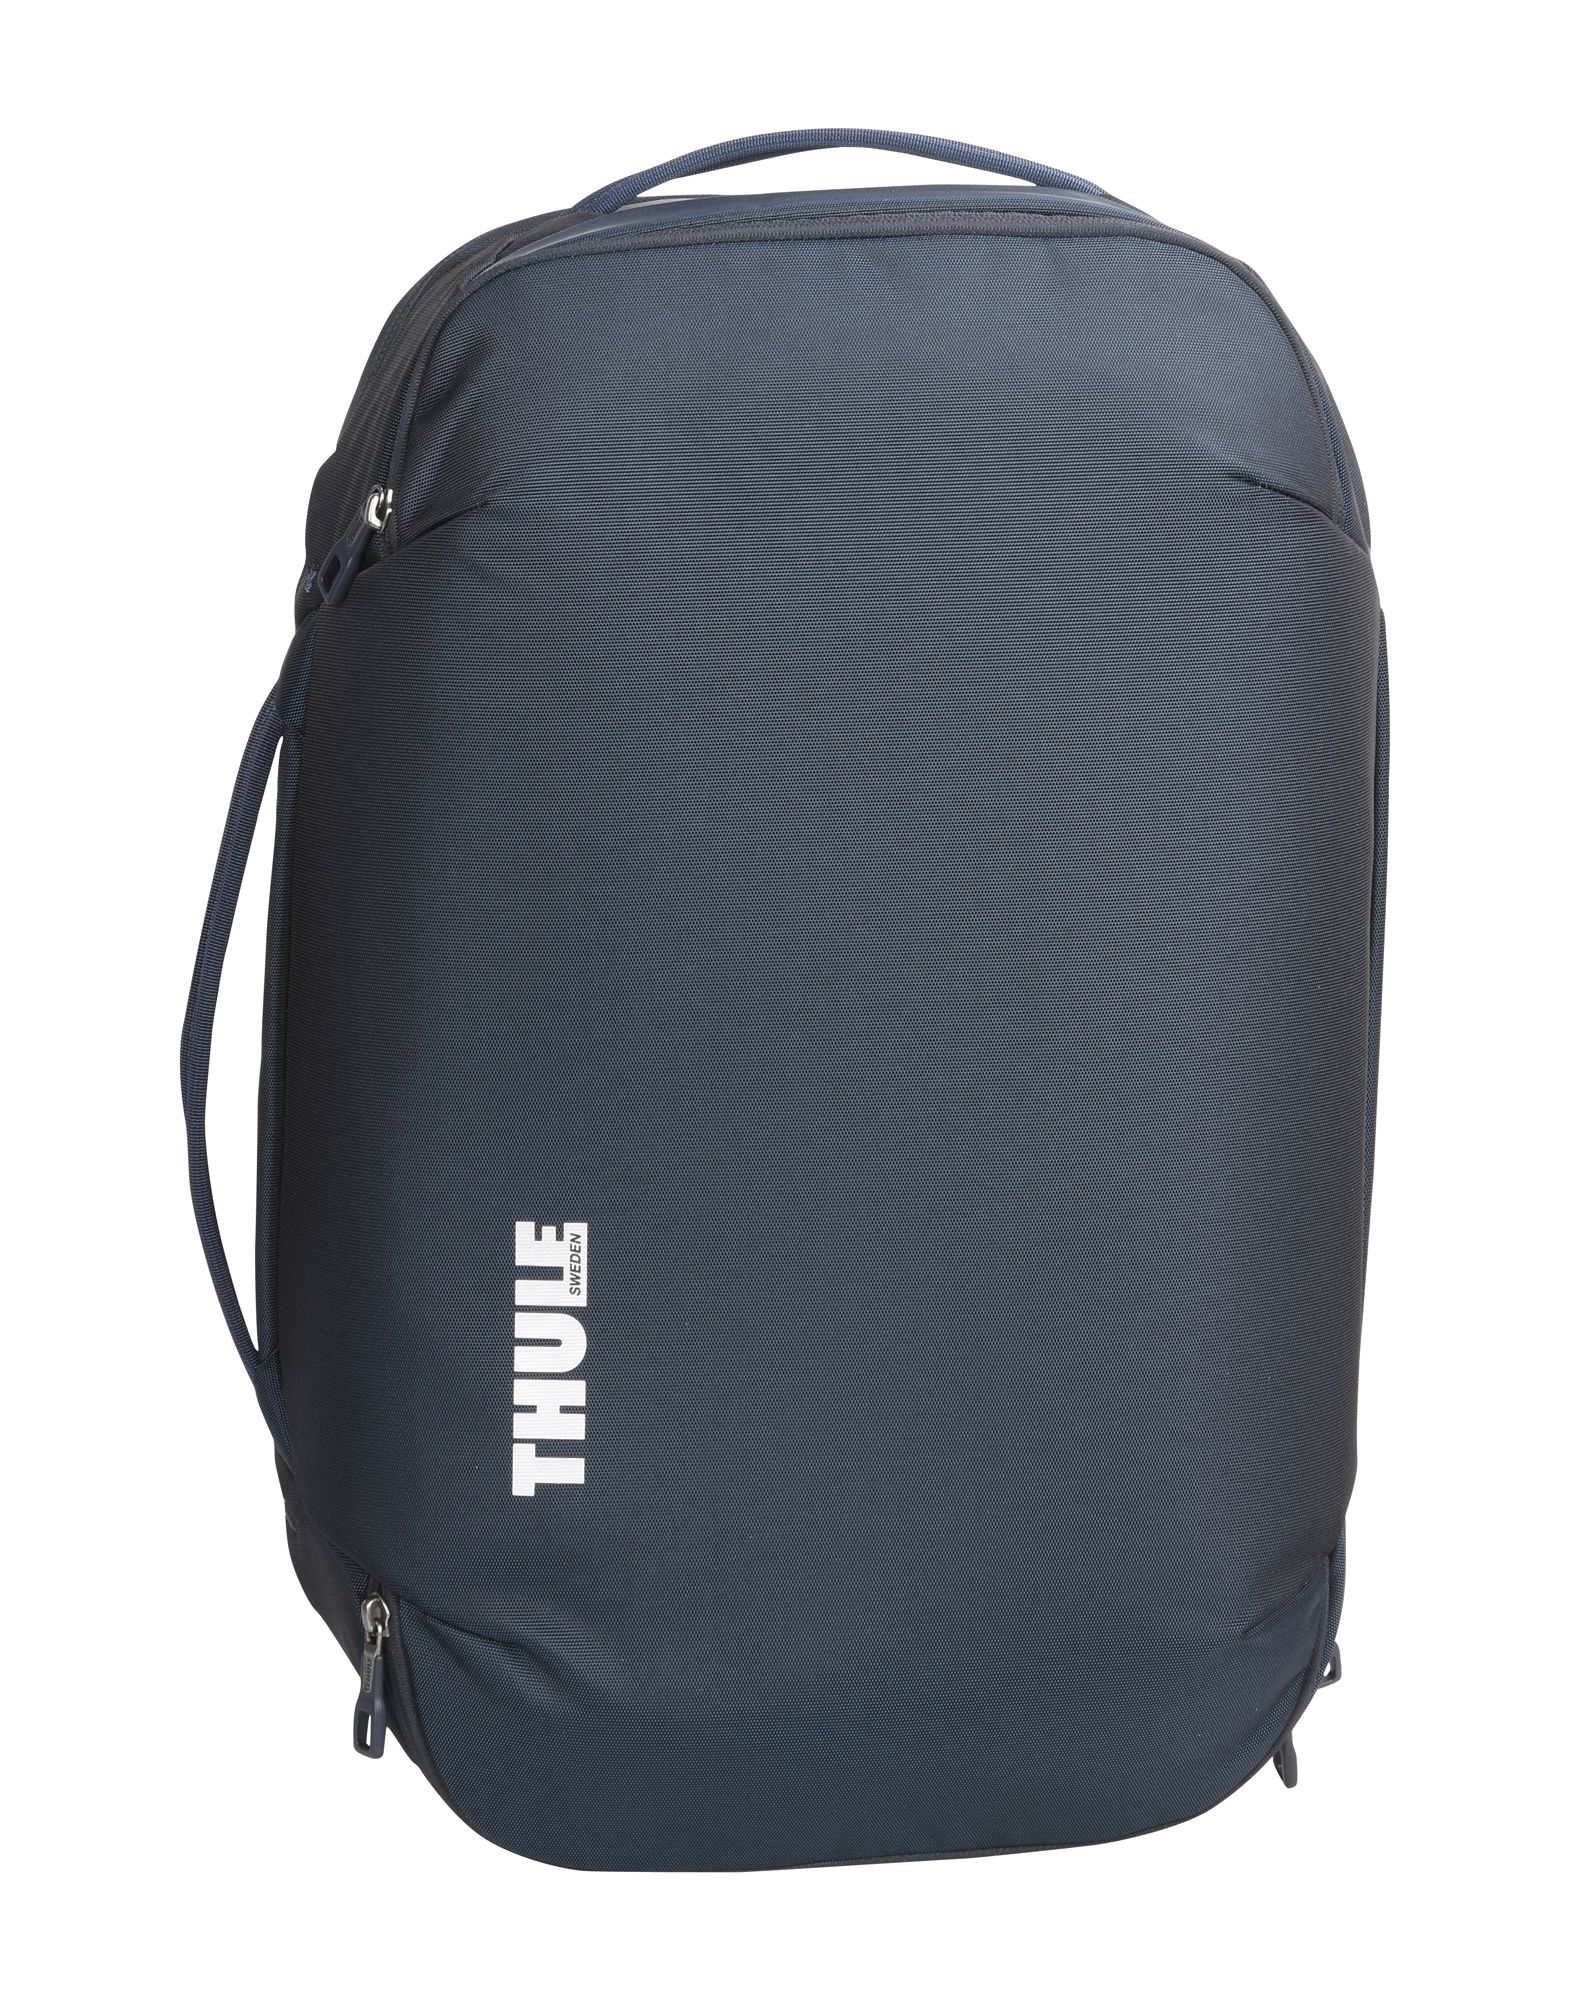 THULE® Suitcases. techno fabric, no appliqués, zip closure, solid color, removable shoulder strap, lined interior. Textile fibers